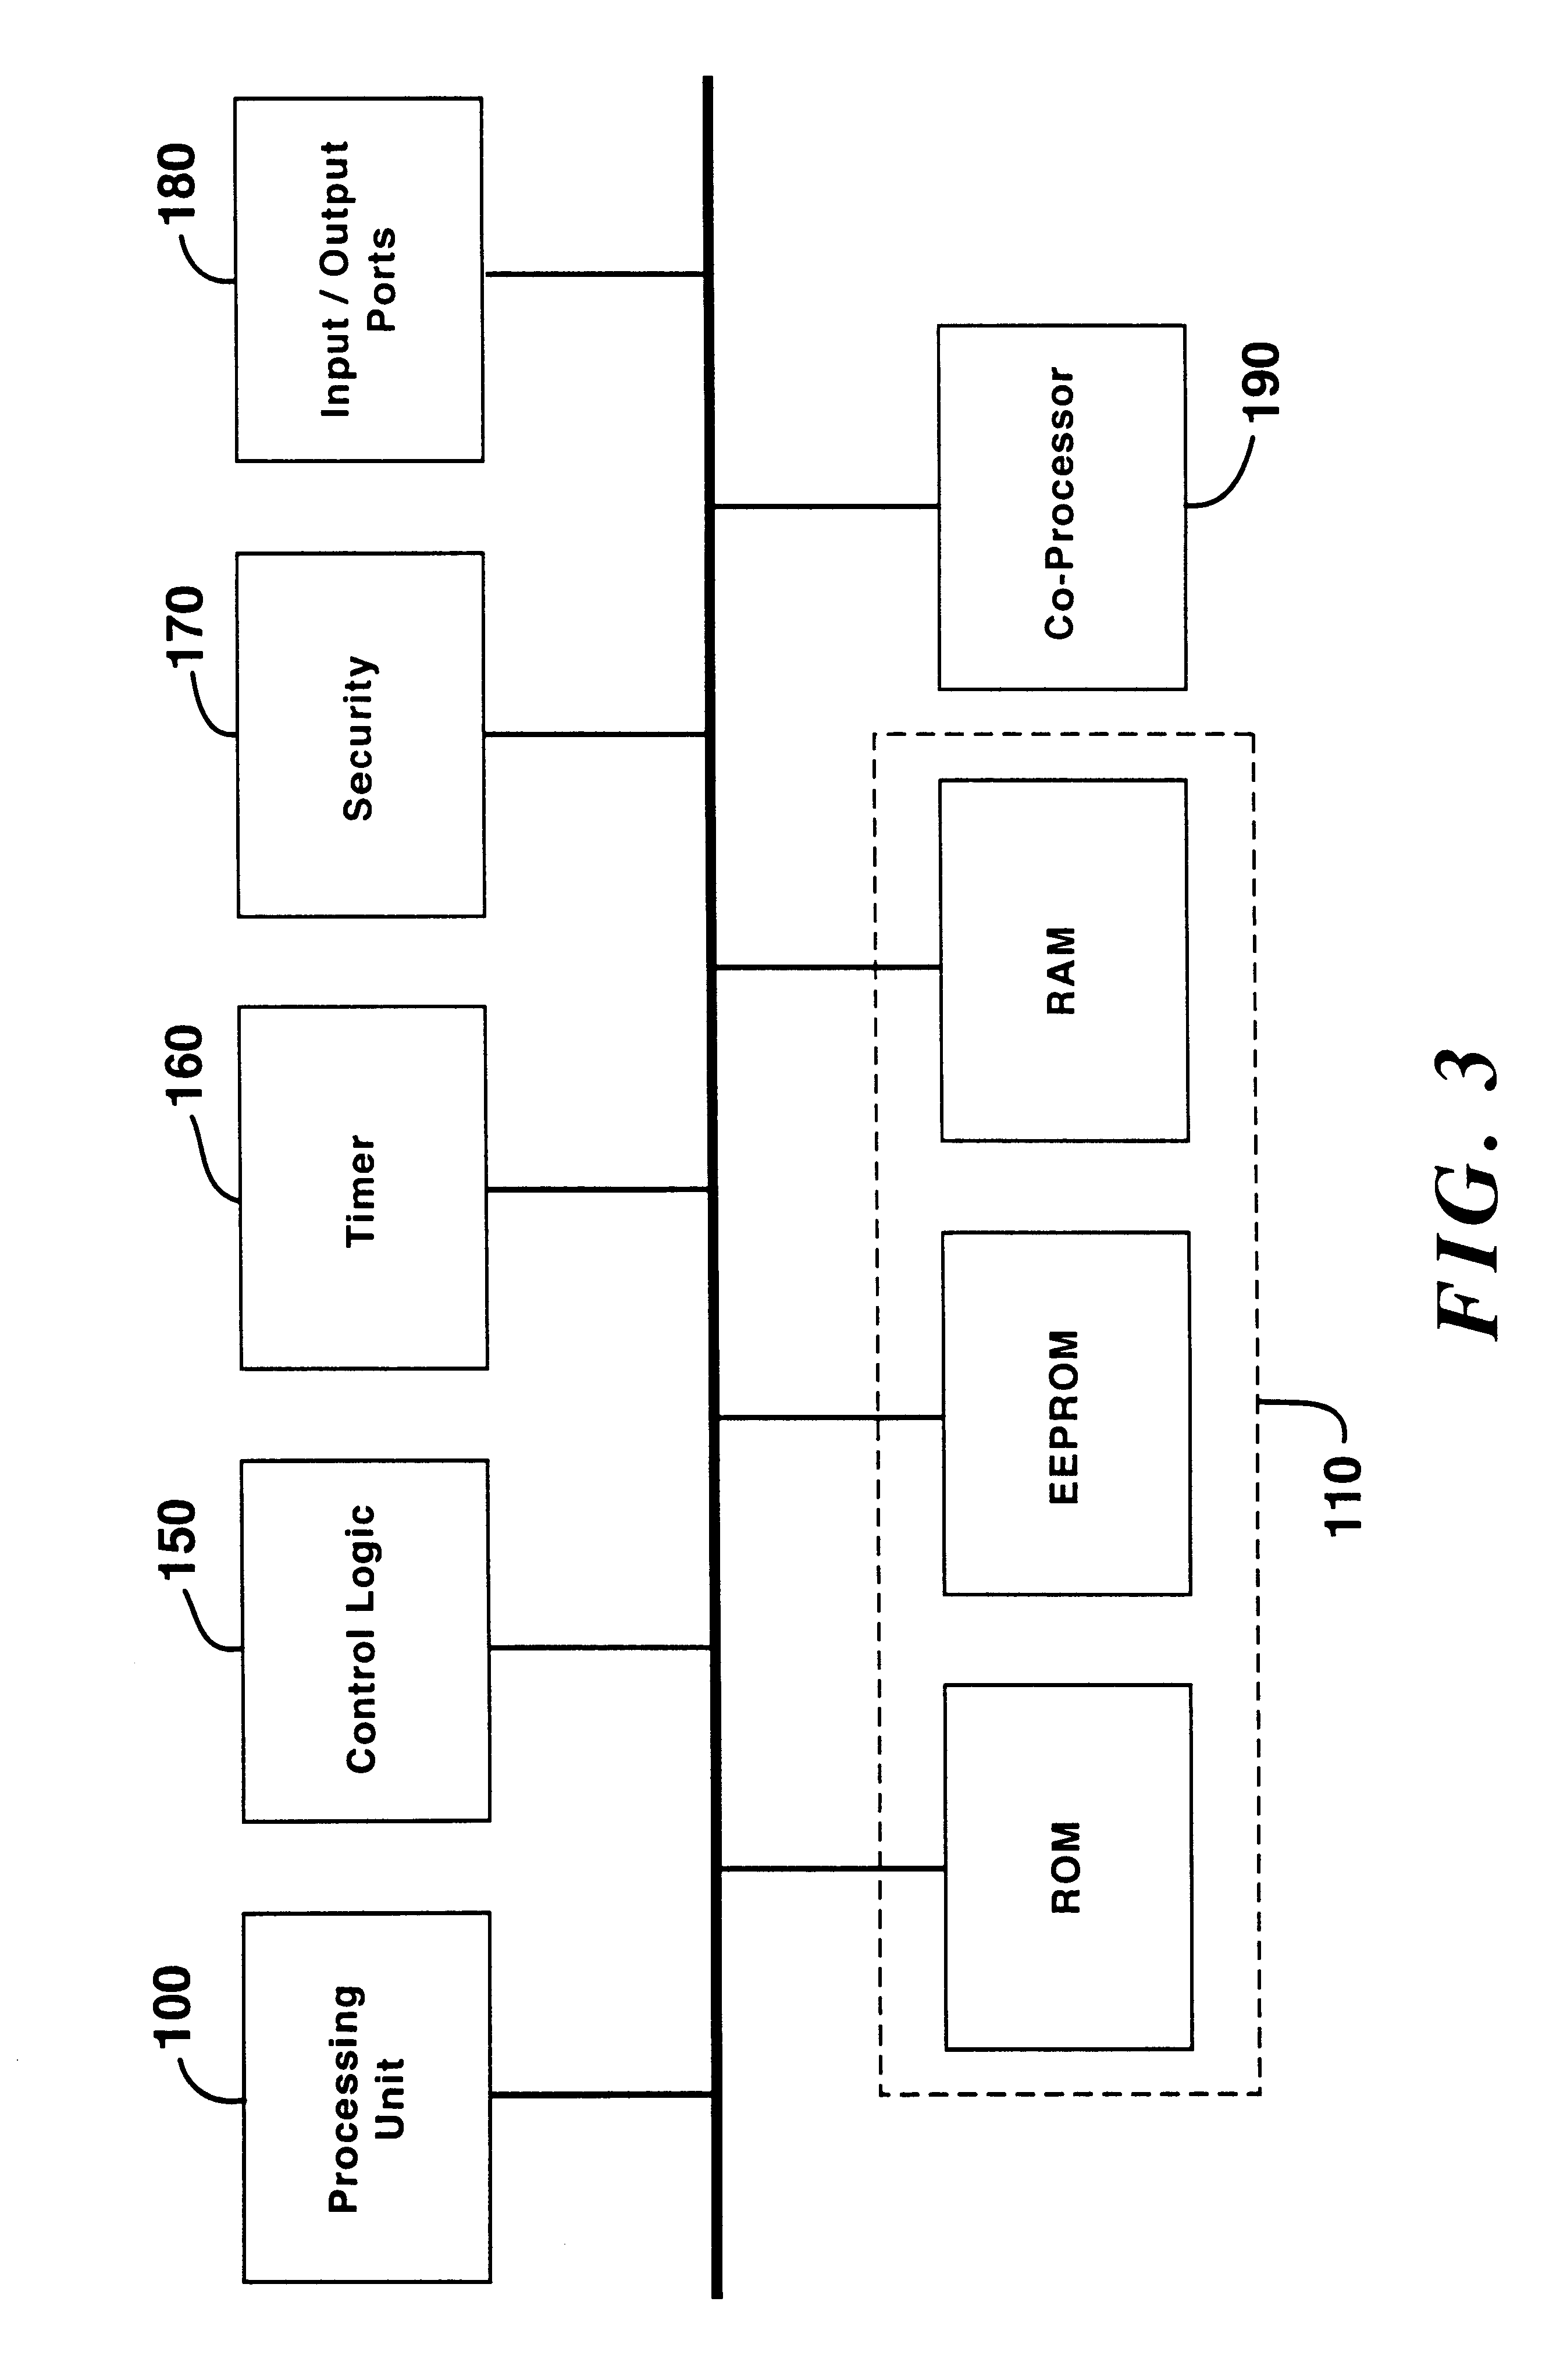 Snap History Of Integrated Circuits Images Fileintegrated 4jpg Wikimedia Commons Patent Us6328217 Circuit Card With Application List Google Patents